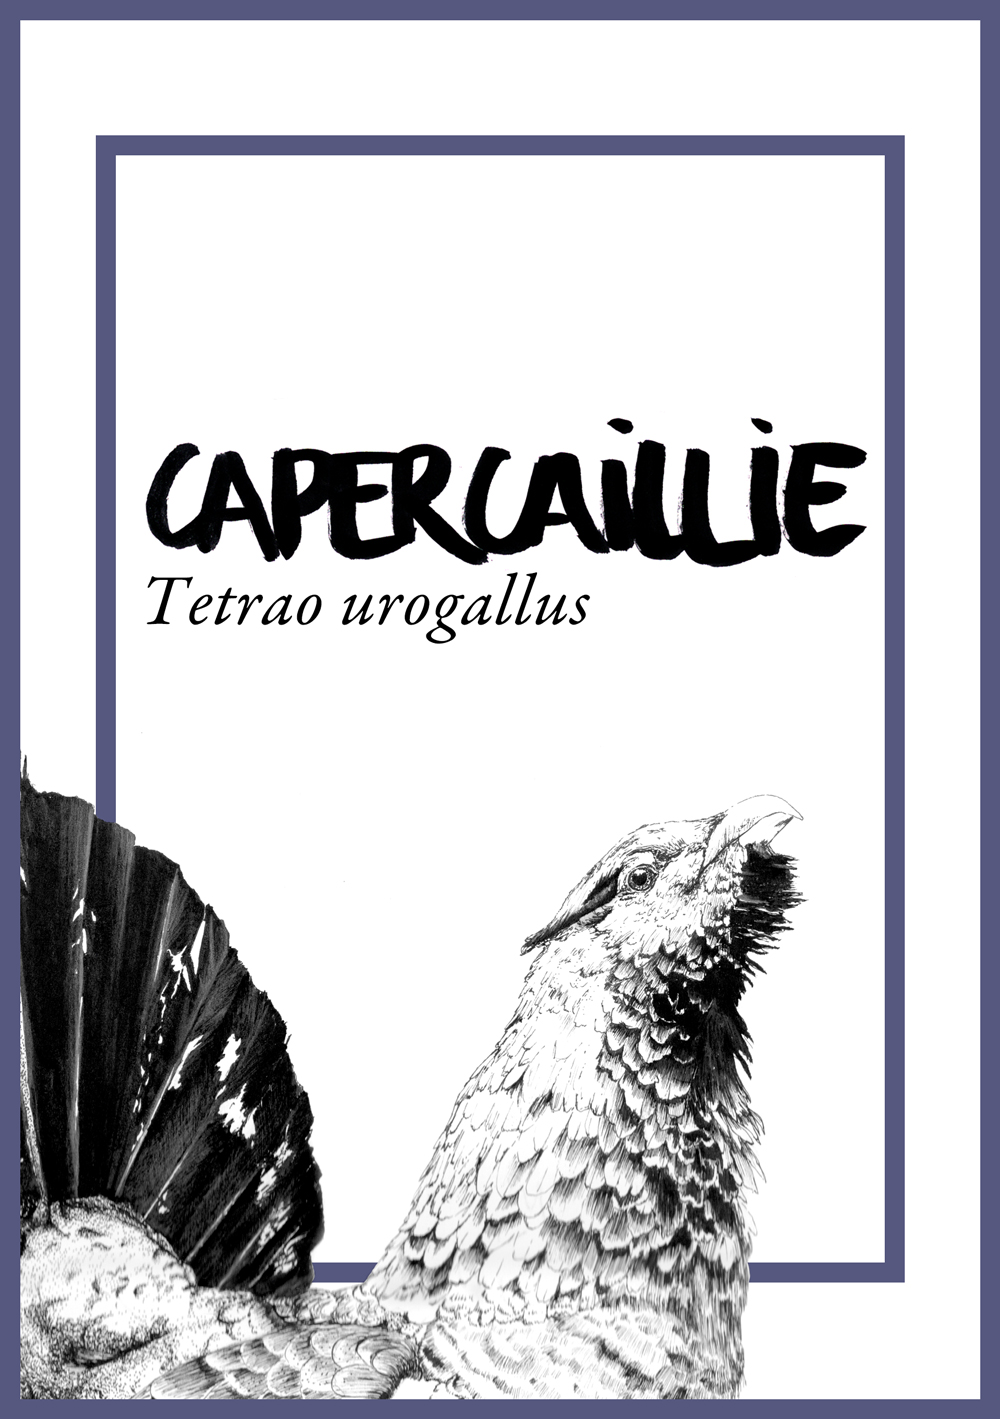 JC-CommissionsTableAnimals-capercaillie.jpg